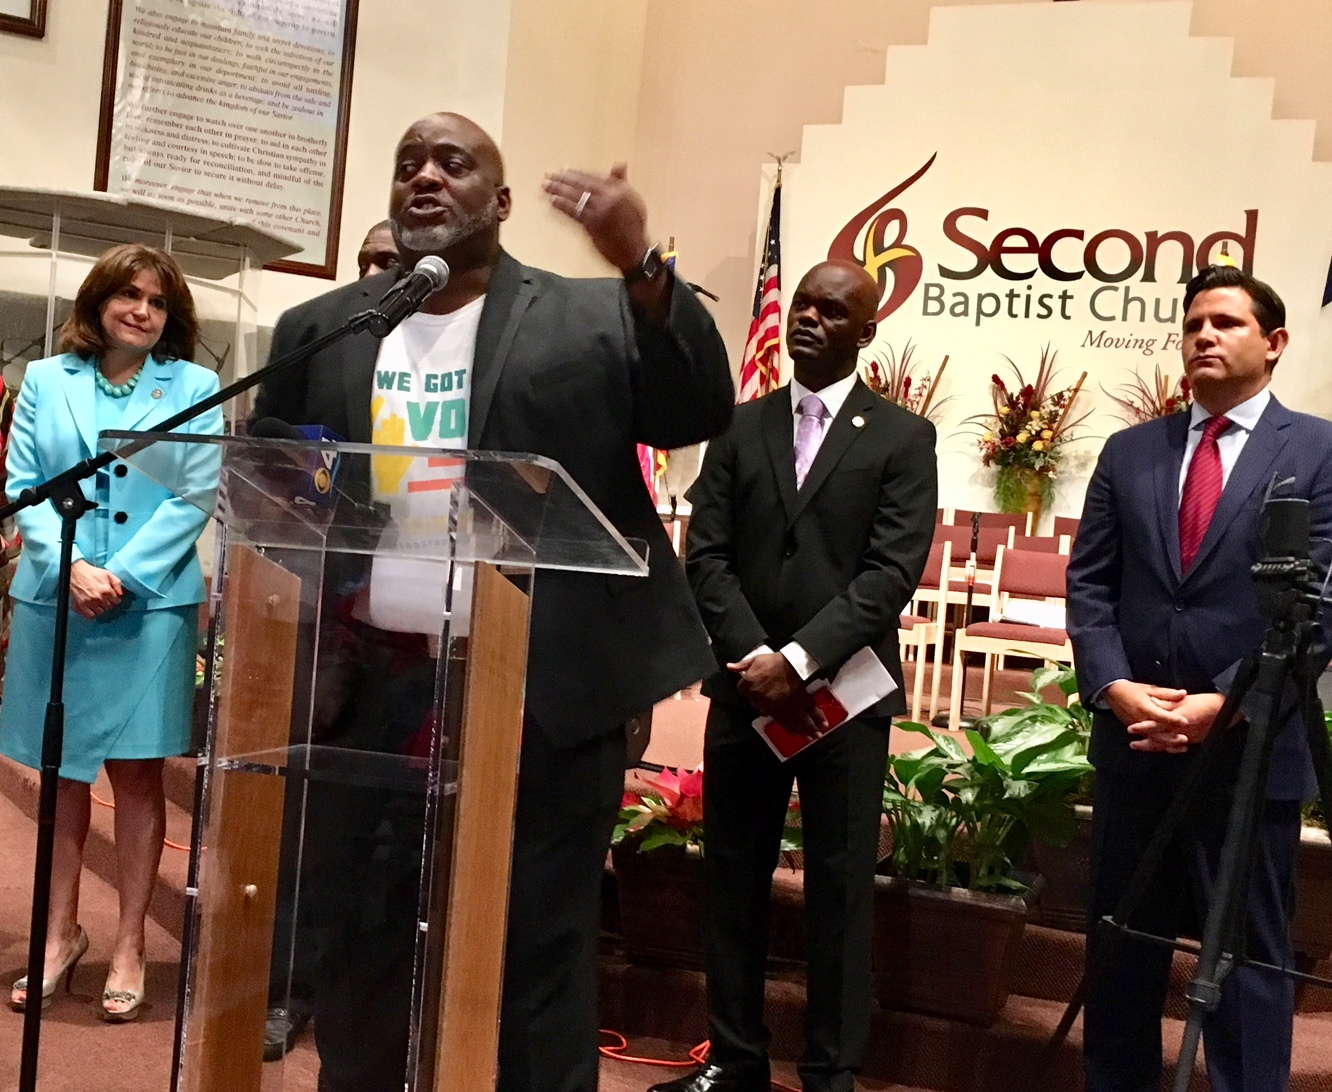 Desmond Meade explains the background and status of Amendment 4.